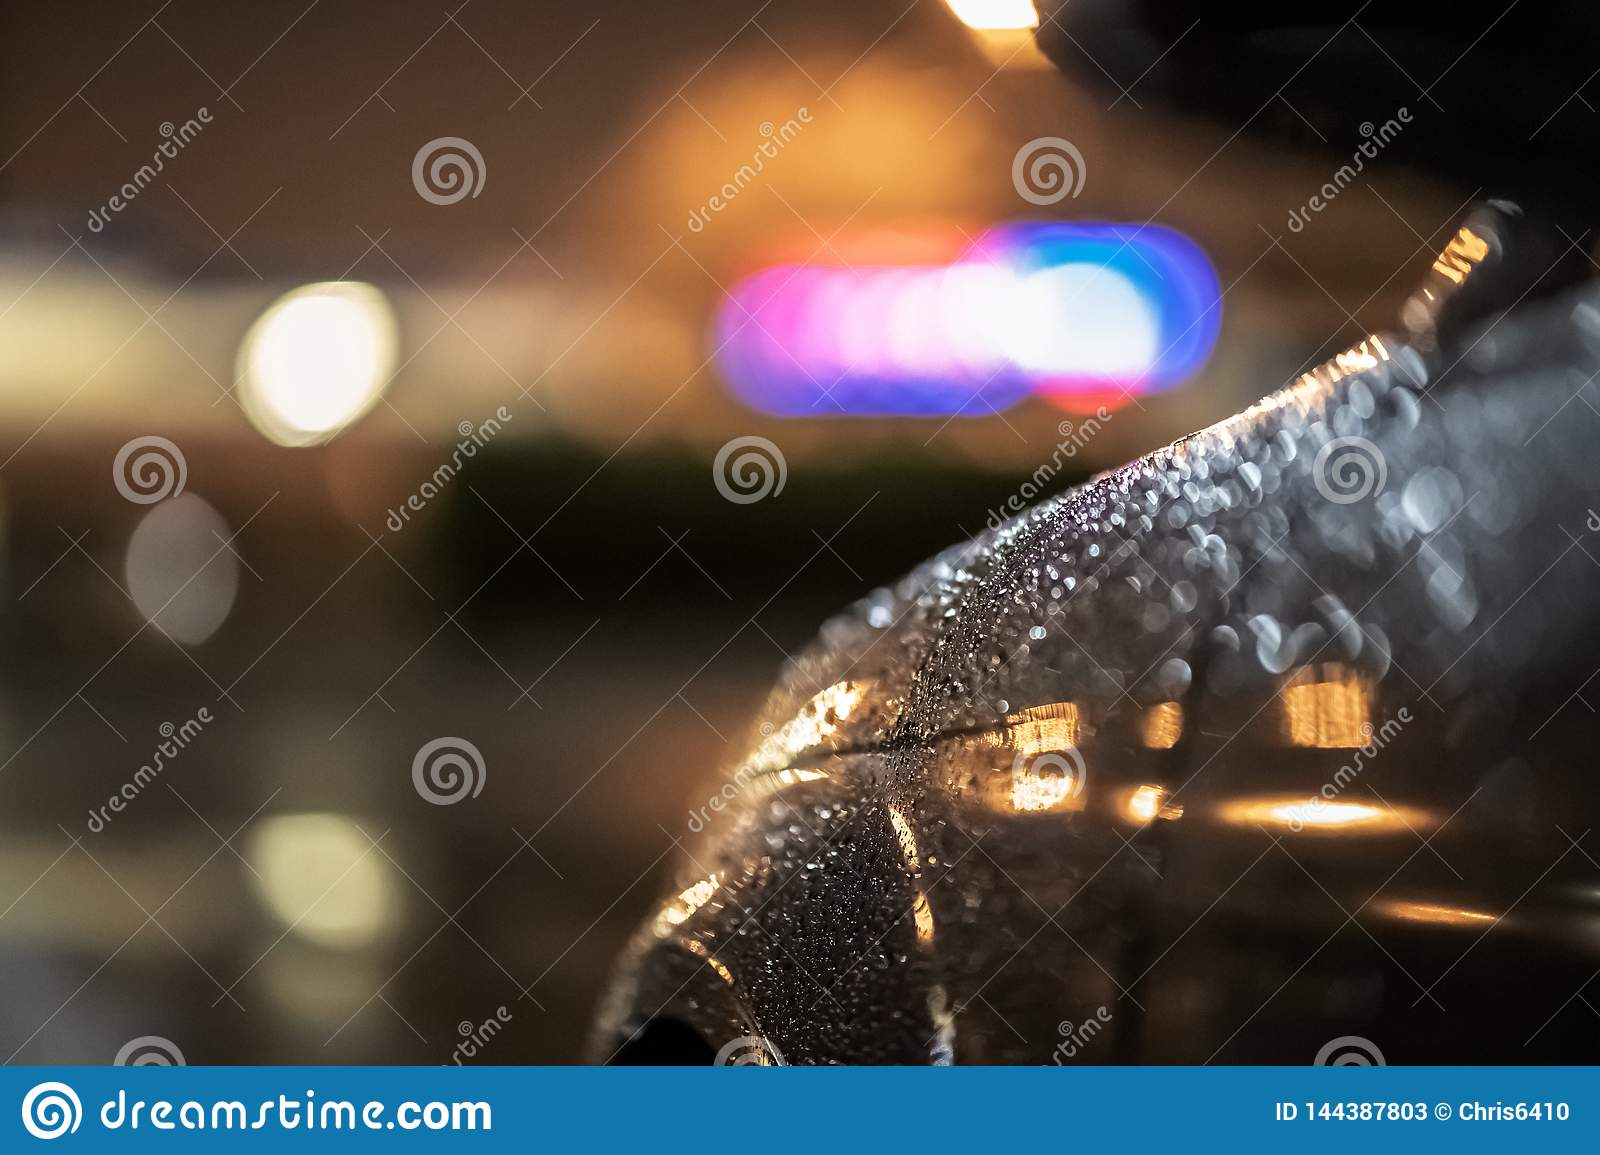 Close up of a dramatic black car at night, waiting in street lights in the heavy rain